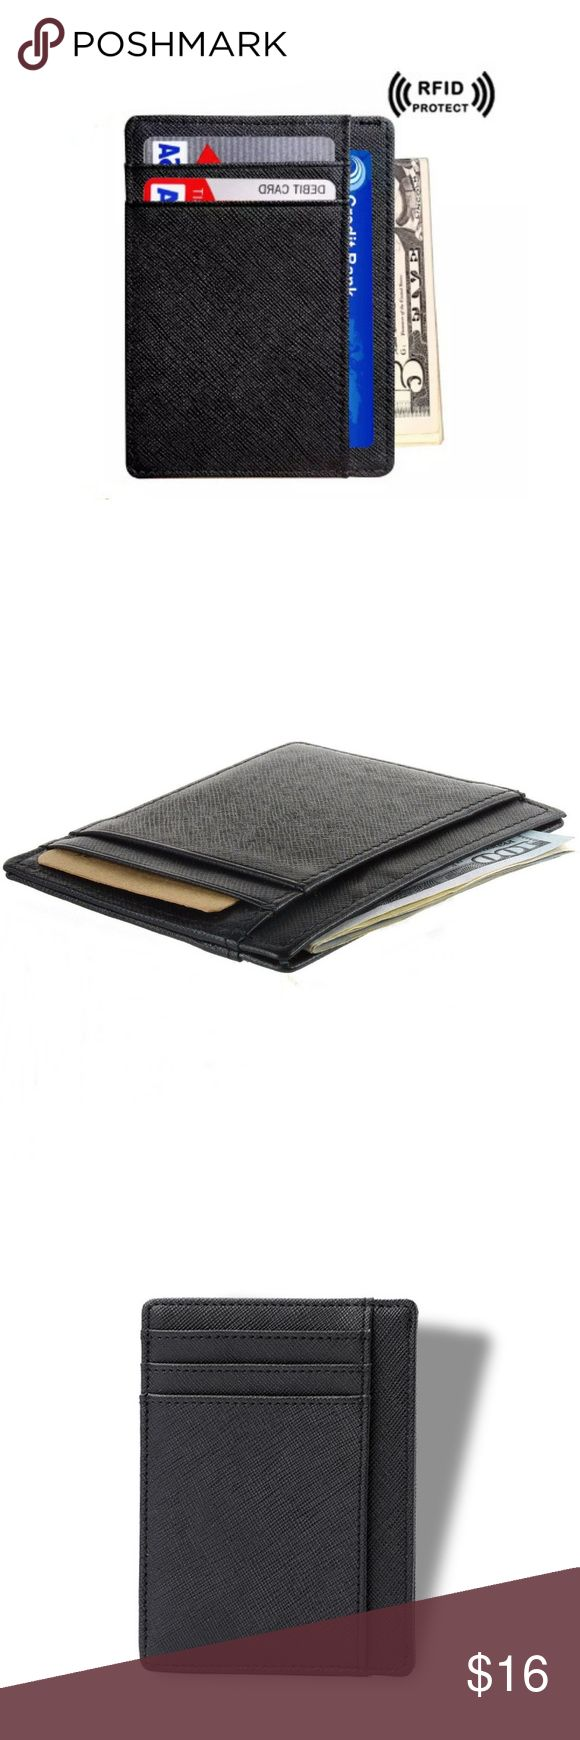 """Slim Wallet Ultra Thin Pocket Wallet RFID Blocking Wallet. Blocking will be effective for contactless new Credit/Debit Cards as well as HID i Class newer cards. Older access cards with 125 KHz frequency will not be effected.  Measures: 4"""" x 3 1/4"""" x 1/8"""" - 6 Card Slots  1 Larger Card/Money/Receipt Pocket - Top Center Access  Ultra Slim Professional Business Card Case or Wallet. Compact Design for Front or Back Pocket Wear  For cash &  1. Credit/debit card  2. ID card  3. Driver license Bags Wallets"""